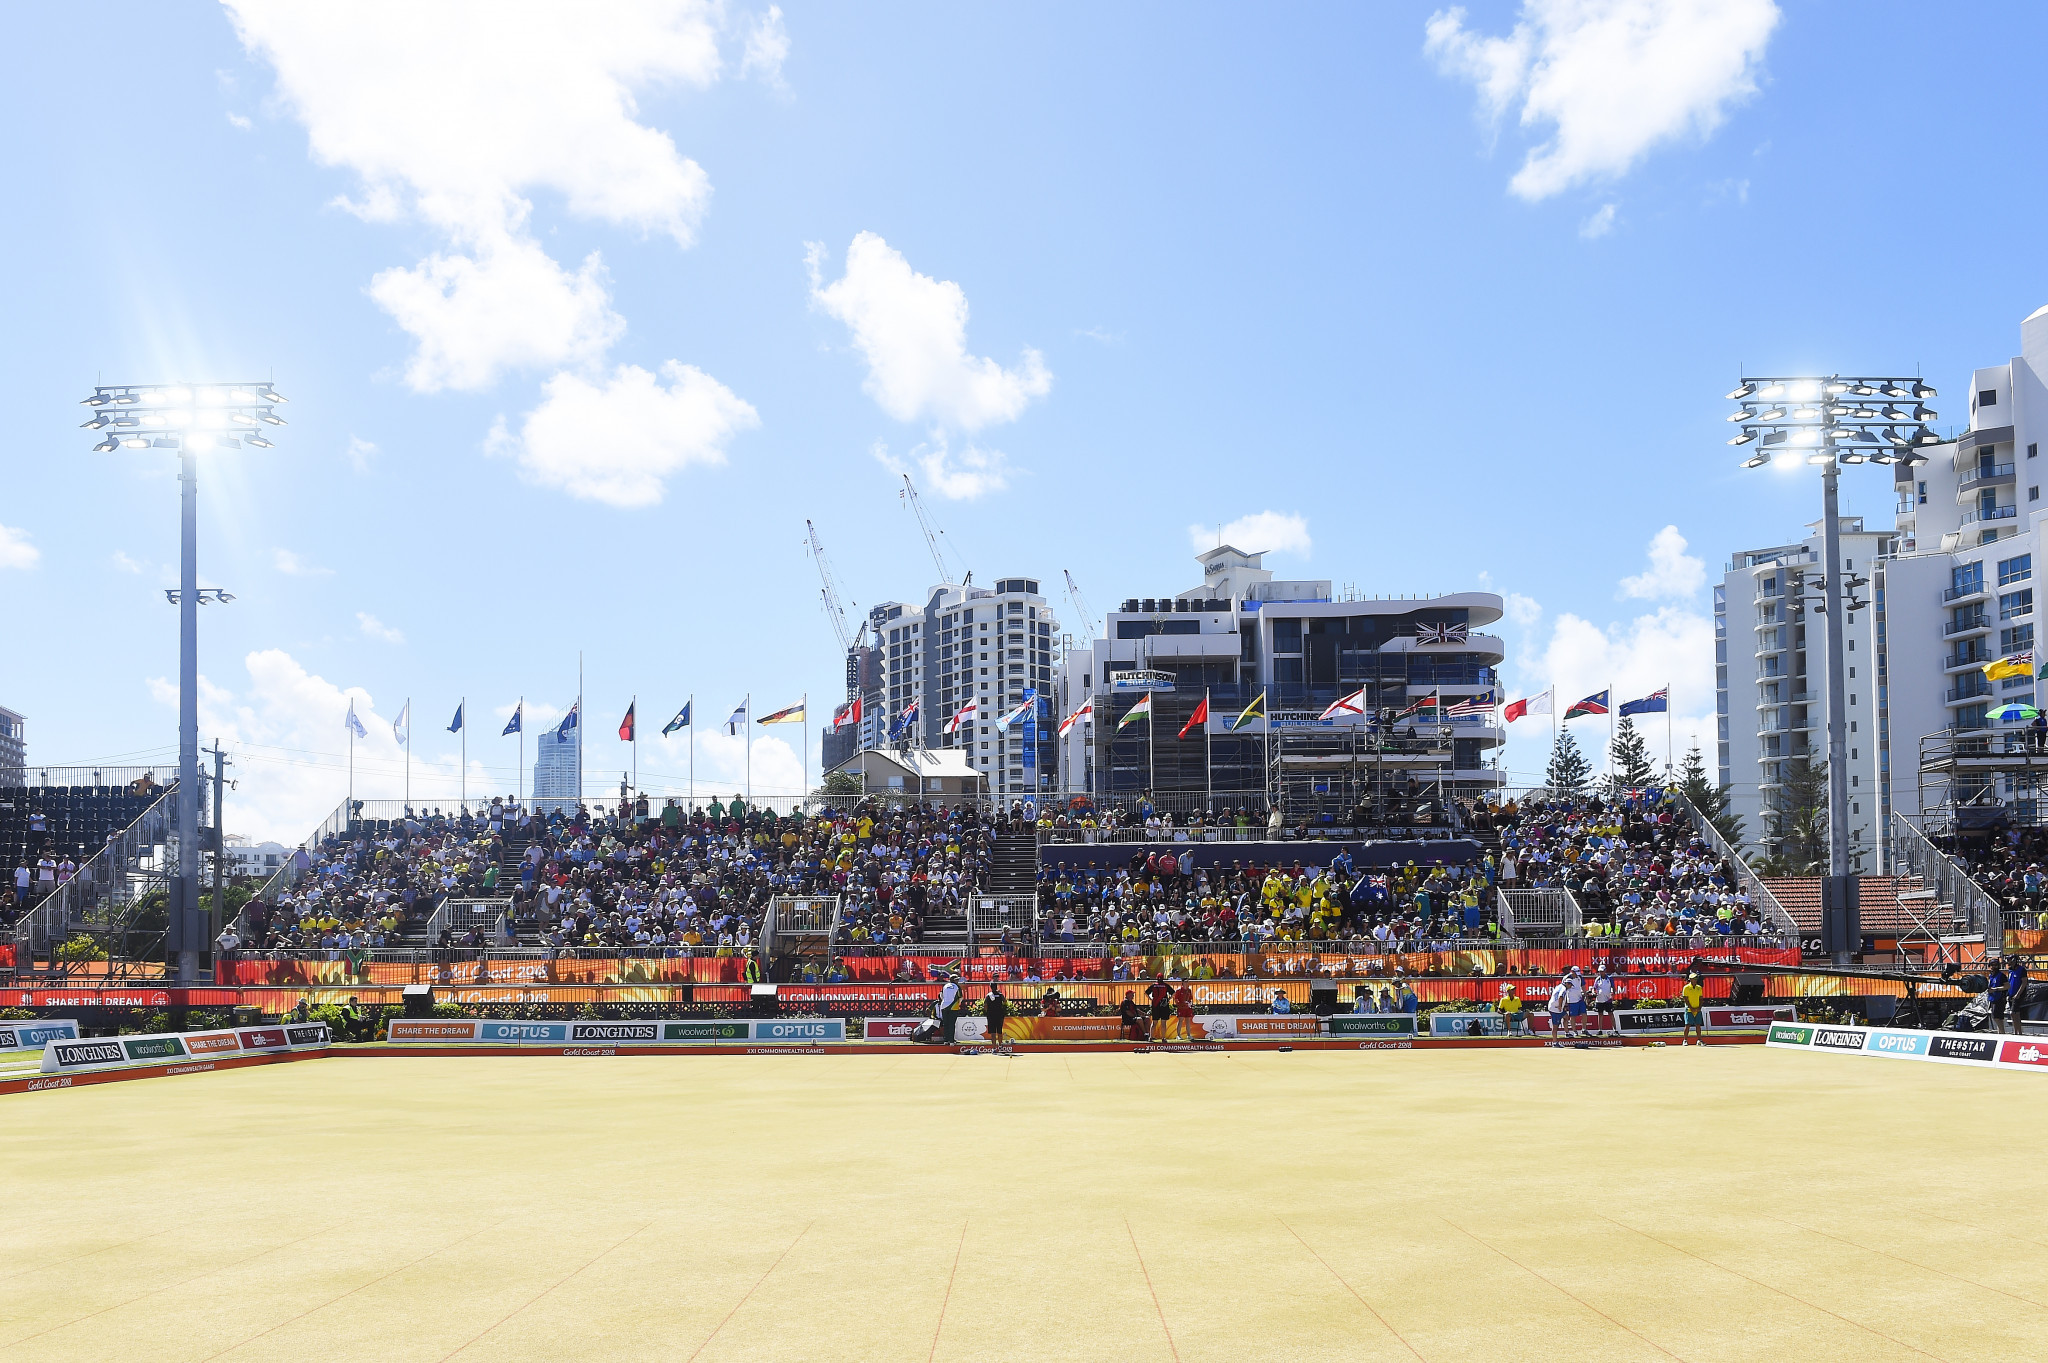 Broadbeach Bowls Club held lawn bowls events at the Gold Coast 2018 Commonwealth Games ©Getty Images